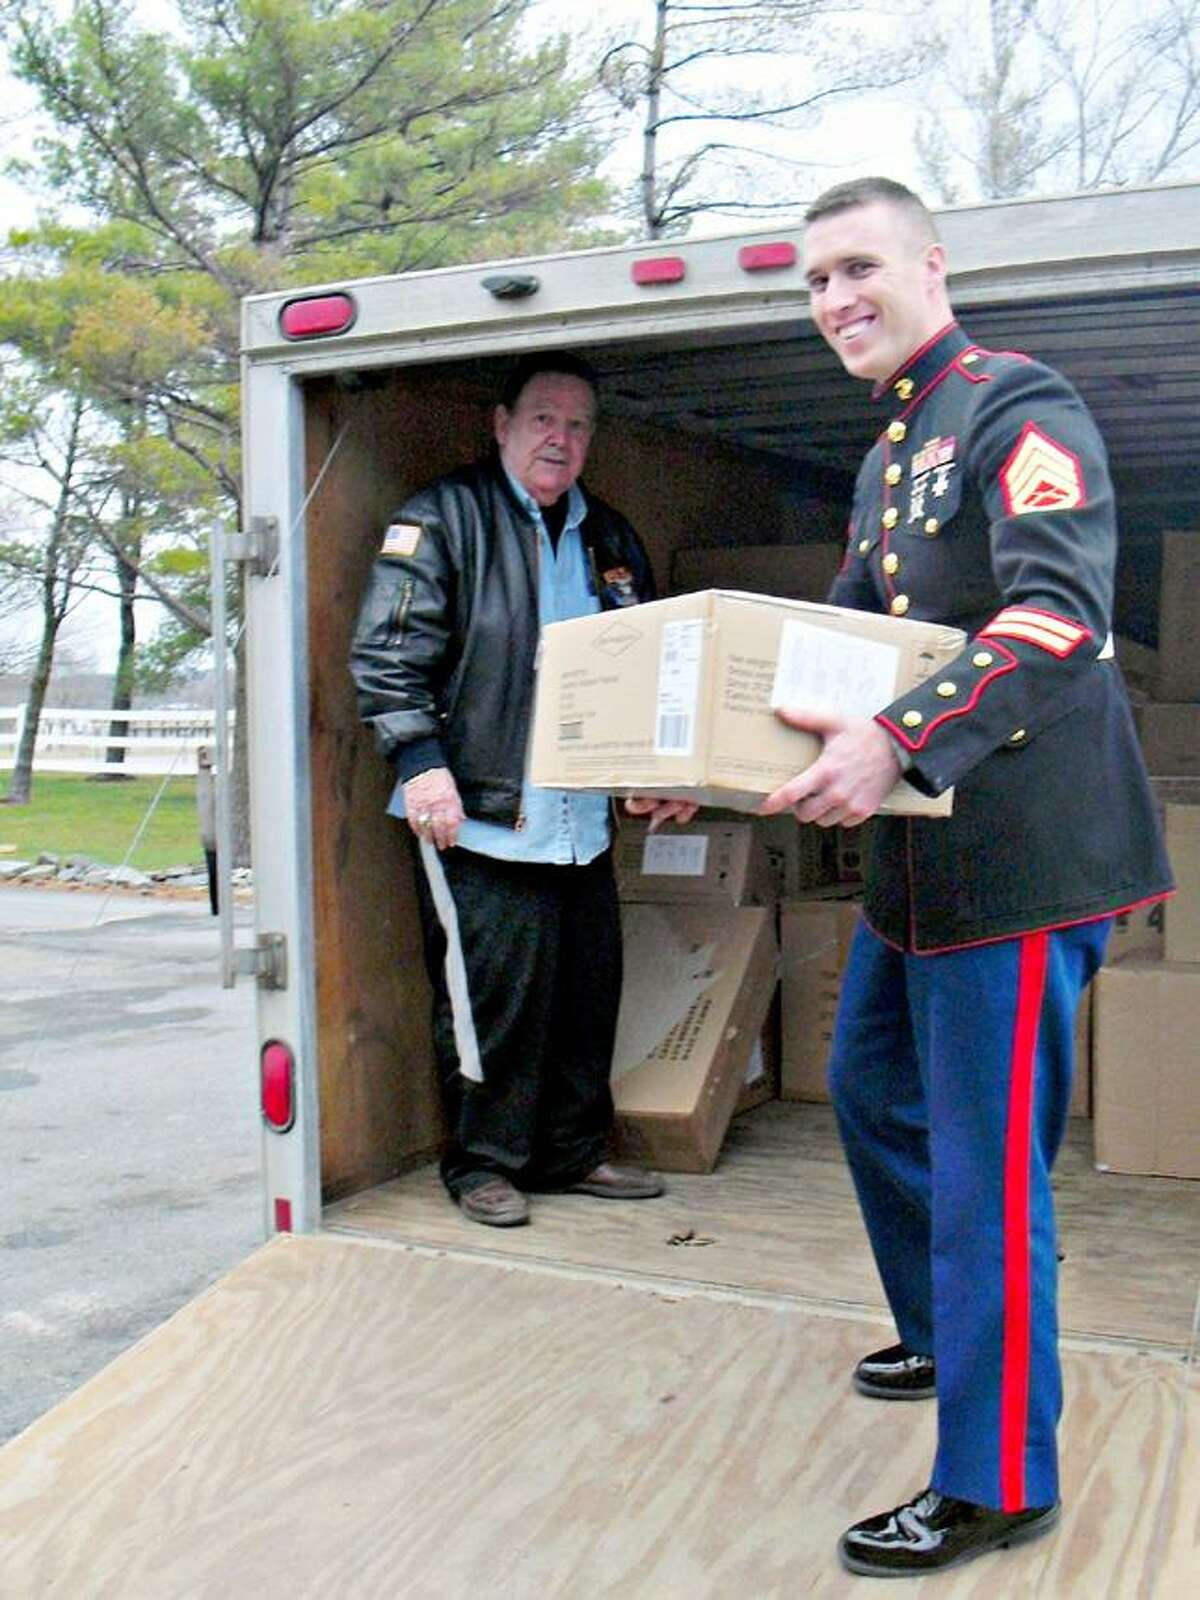 Photo Courtesy VERNON DOWNS A representative from the Syracuse-area Toys for Tots and a member of the U.S. Marine Corps load toys onto a truck at Vernon Downs.